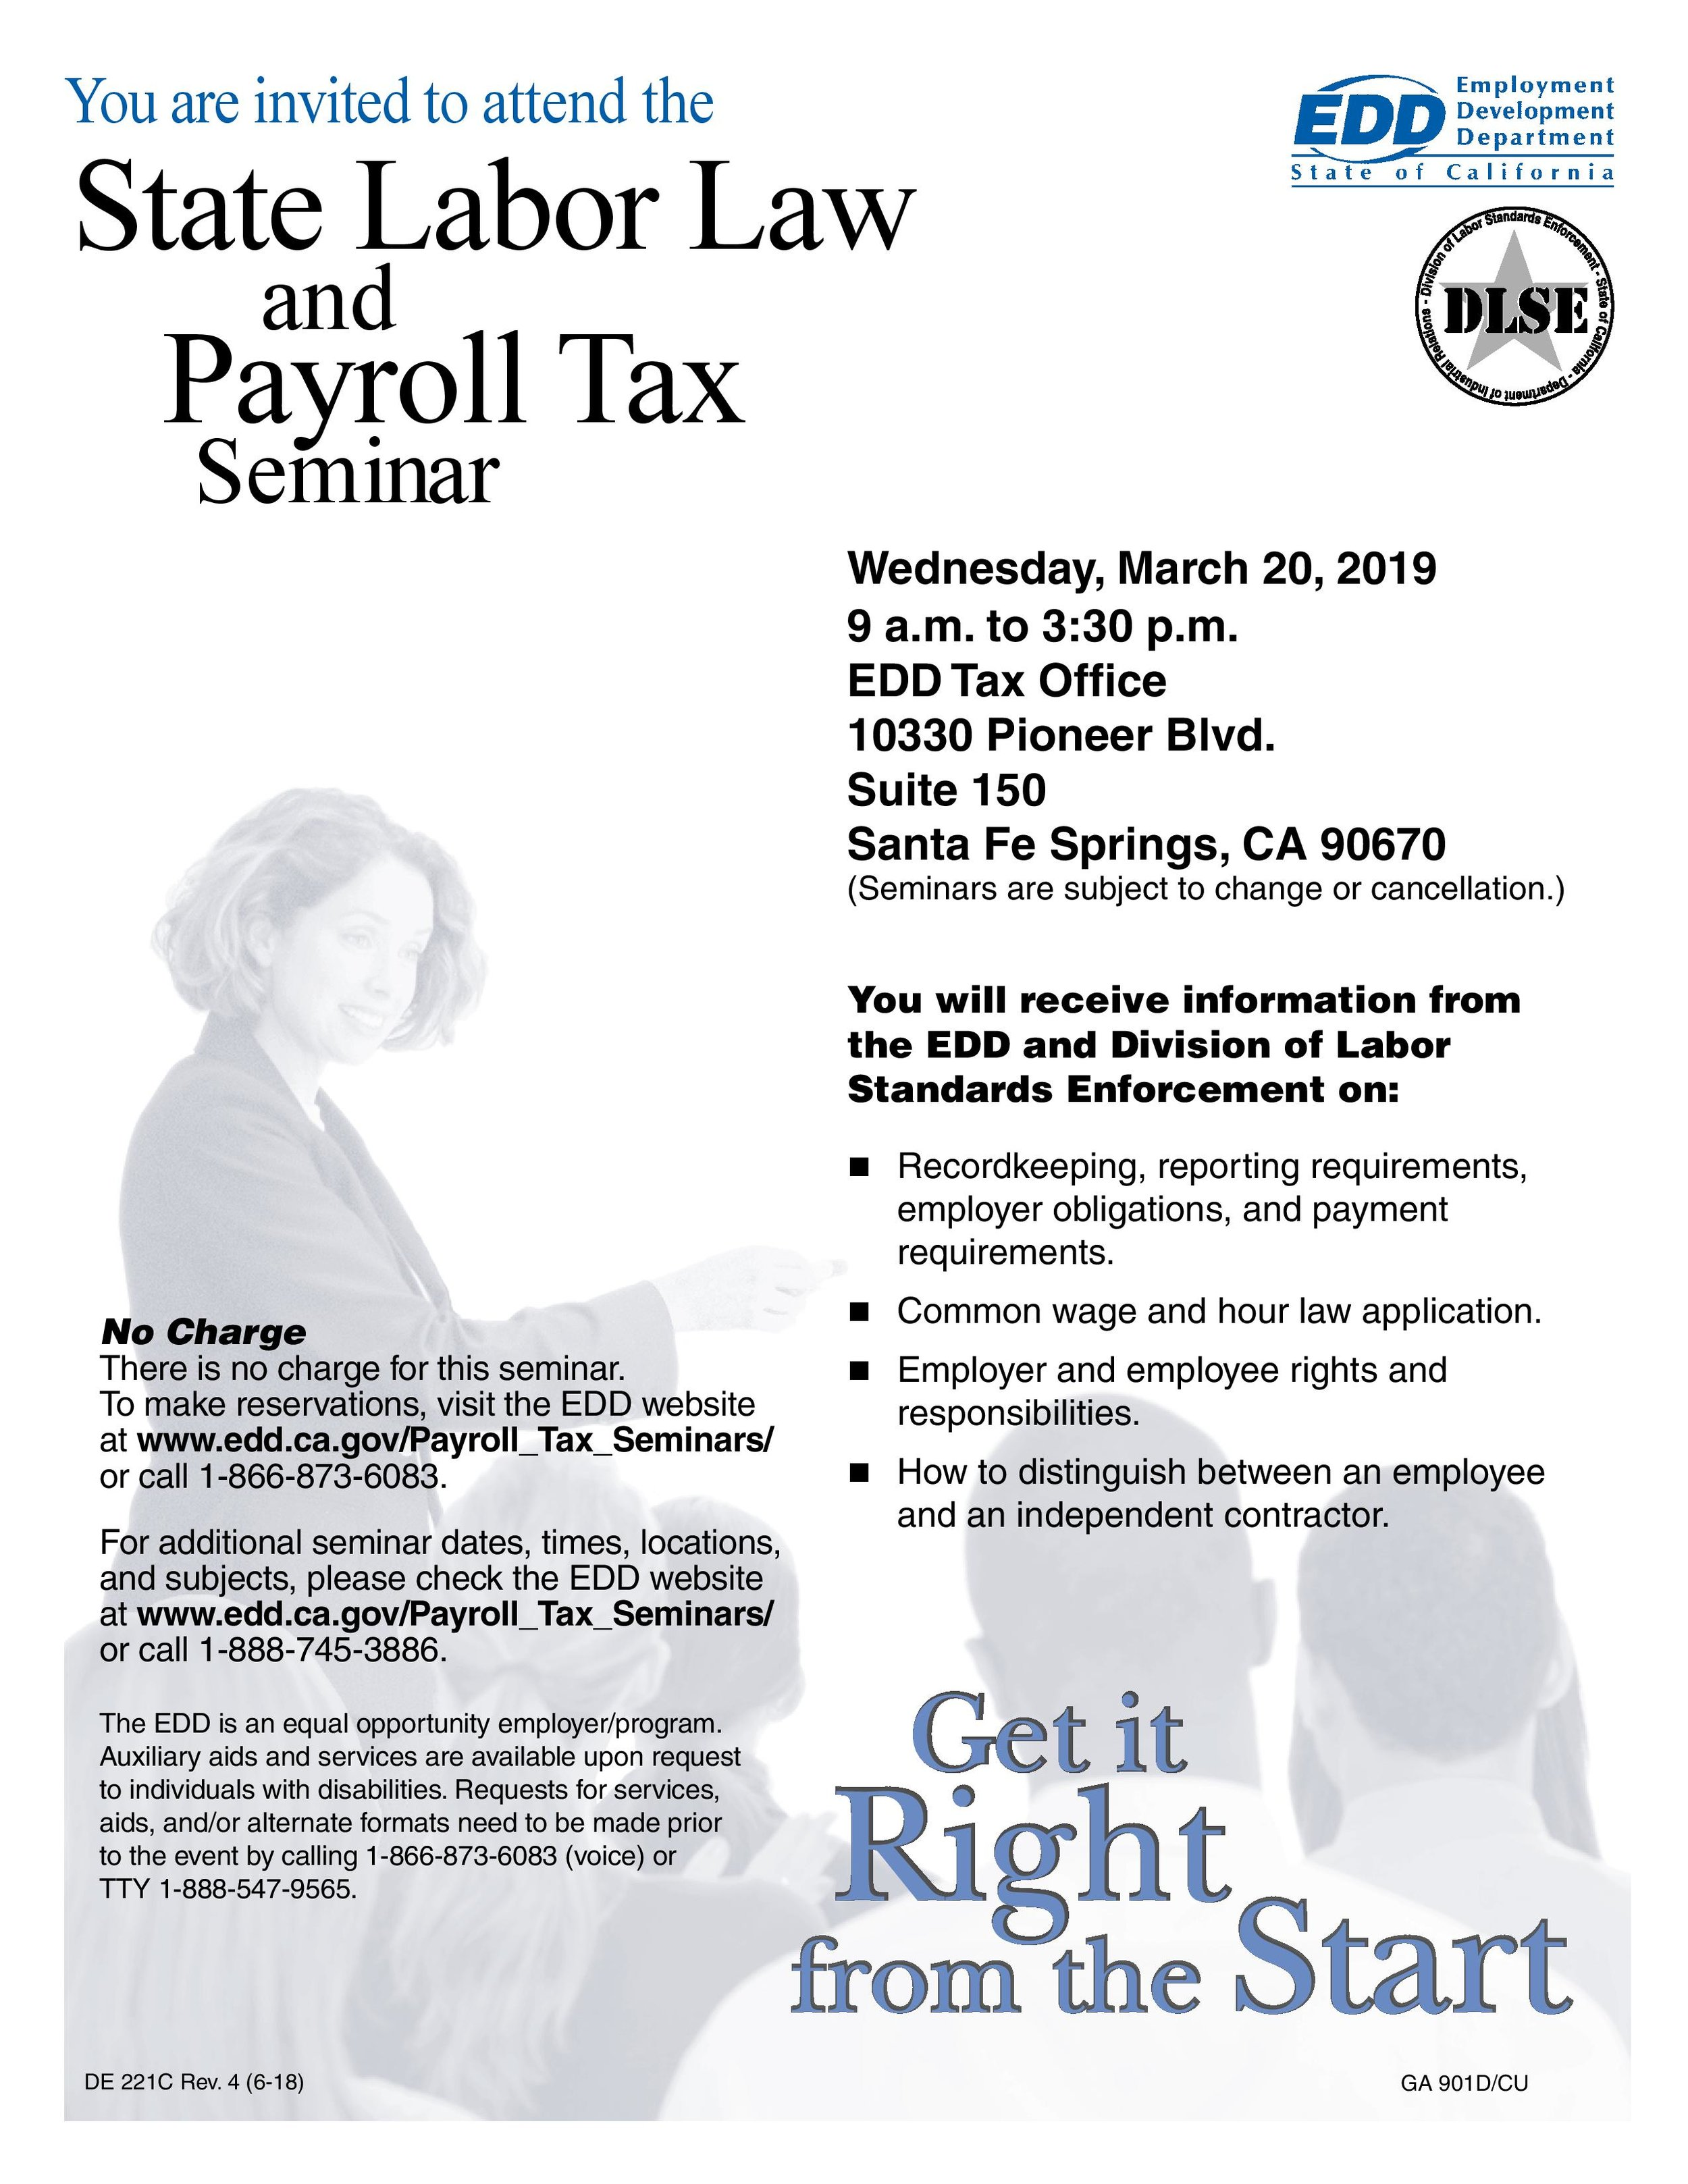 state labor law and payroll tax seminar - March 30th, 2019